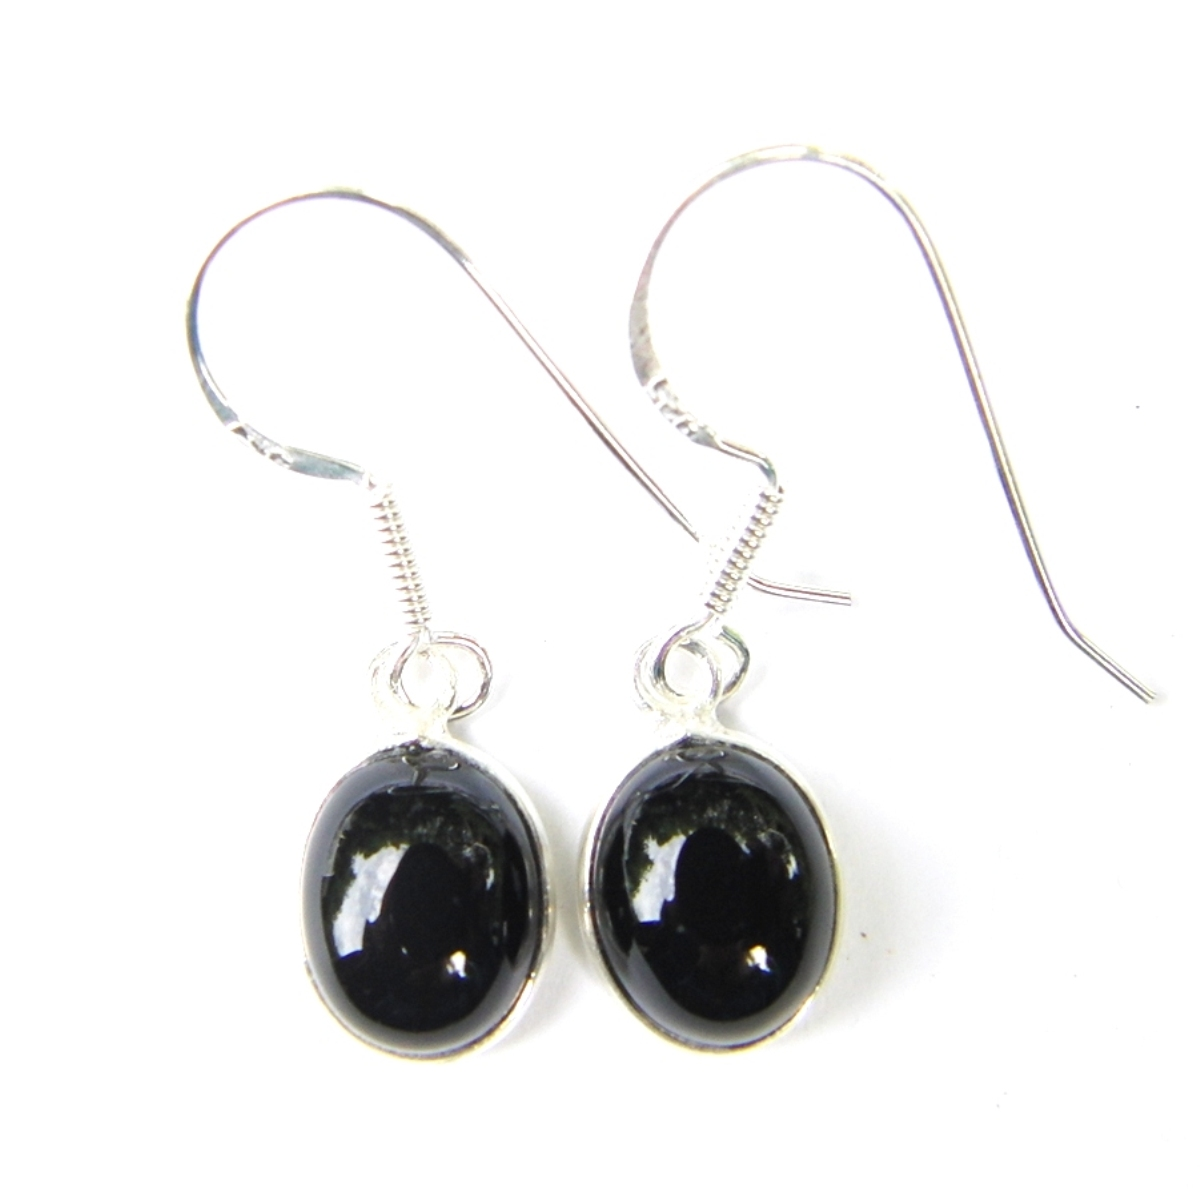 Black Onyx Dainty Oval Earrings